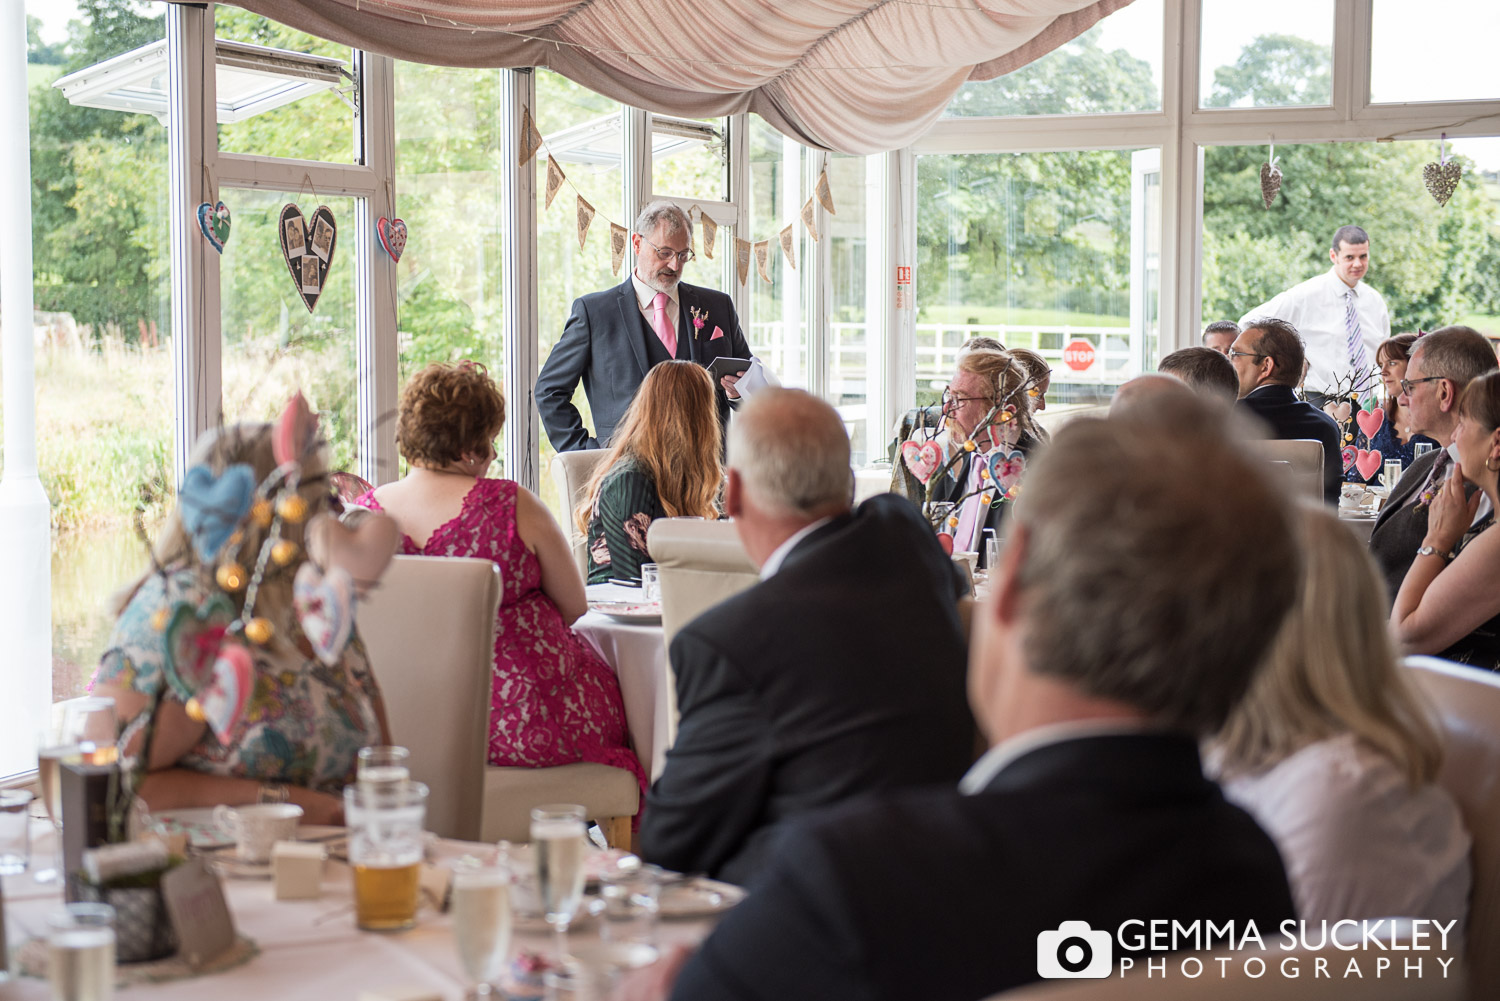 wedding-speeches-skipton©gemmasuckleyphotography.JPG